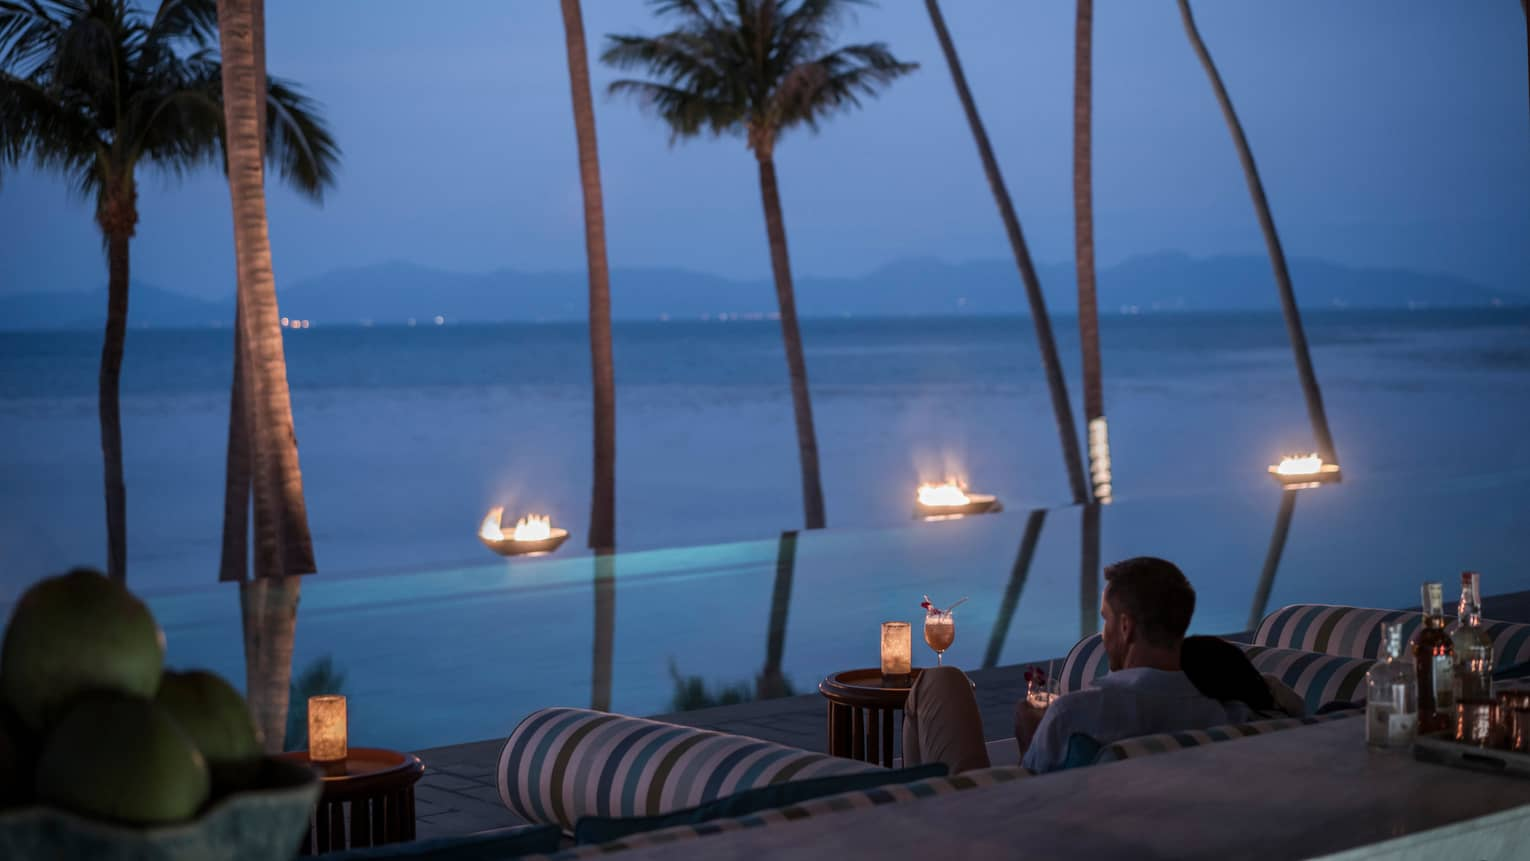 Guests sit outside CoCoRum enjoying drinks by the infinity pool with views of the Gulf of Thailand